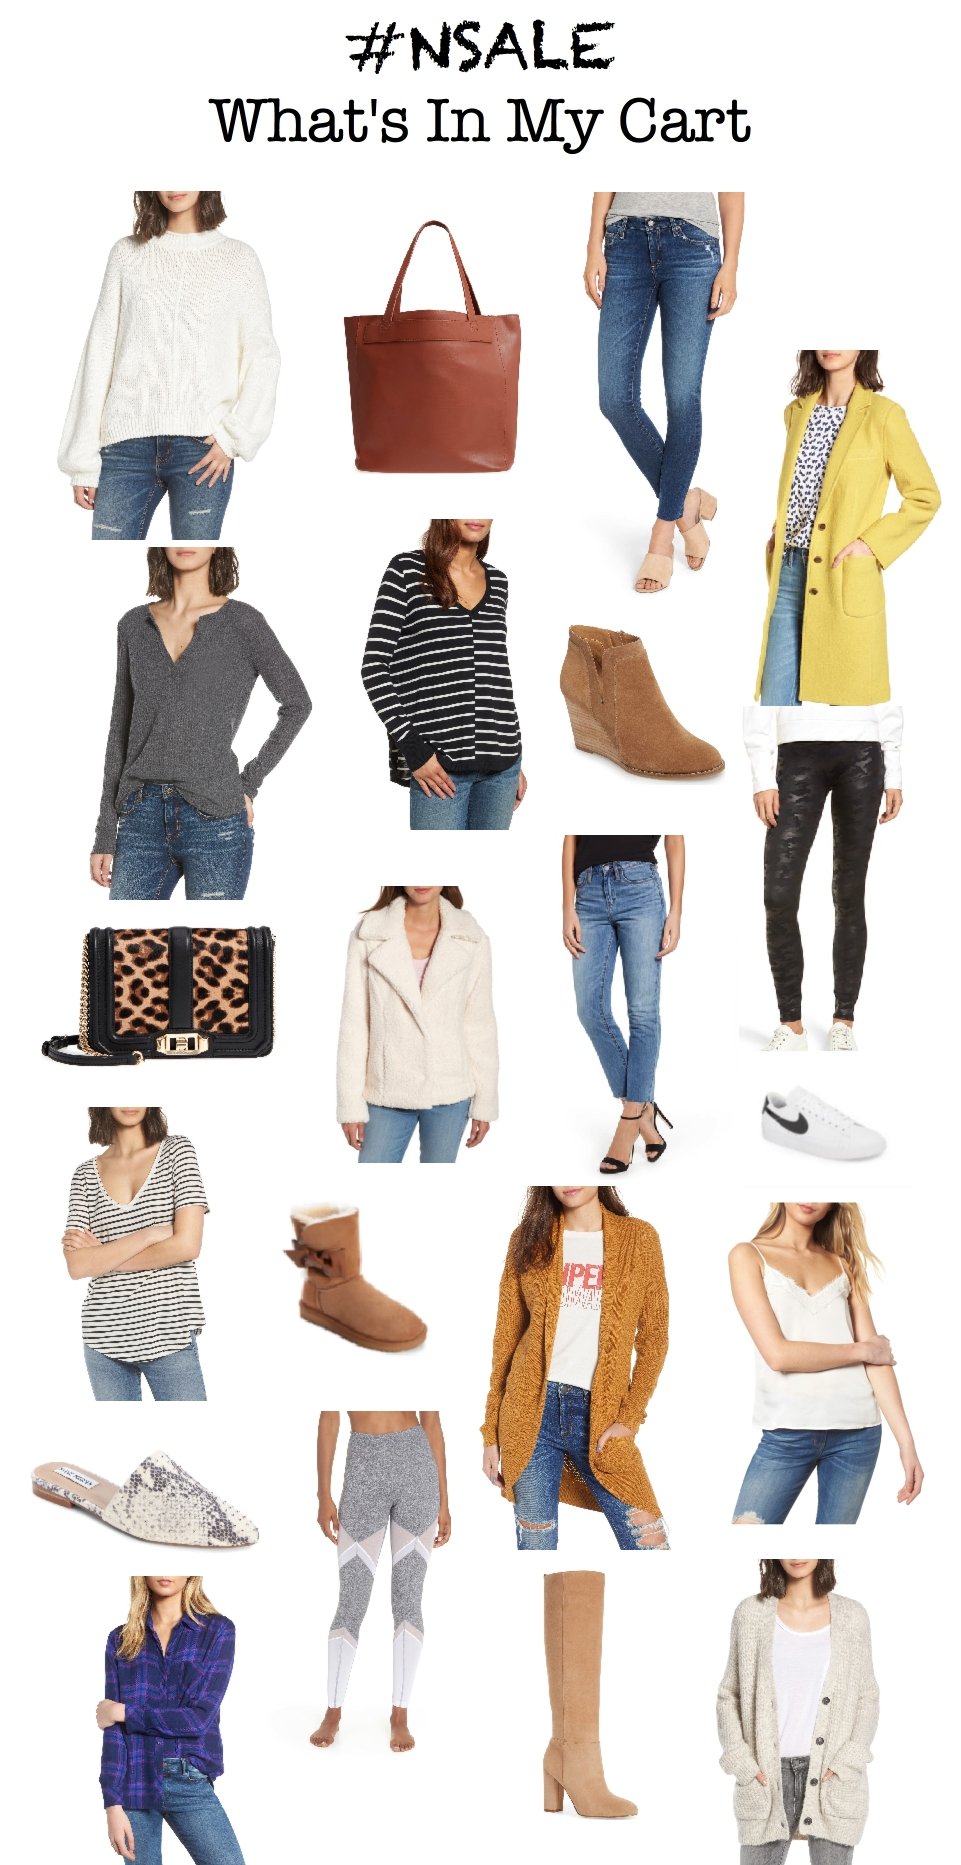 nsale, what is in my cart, guide to fall fashion 2018